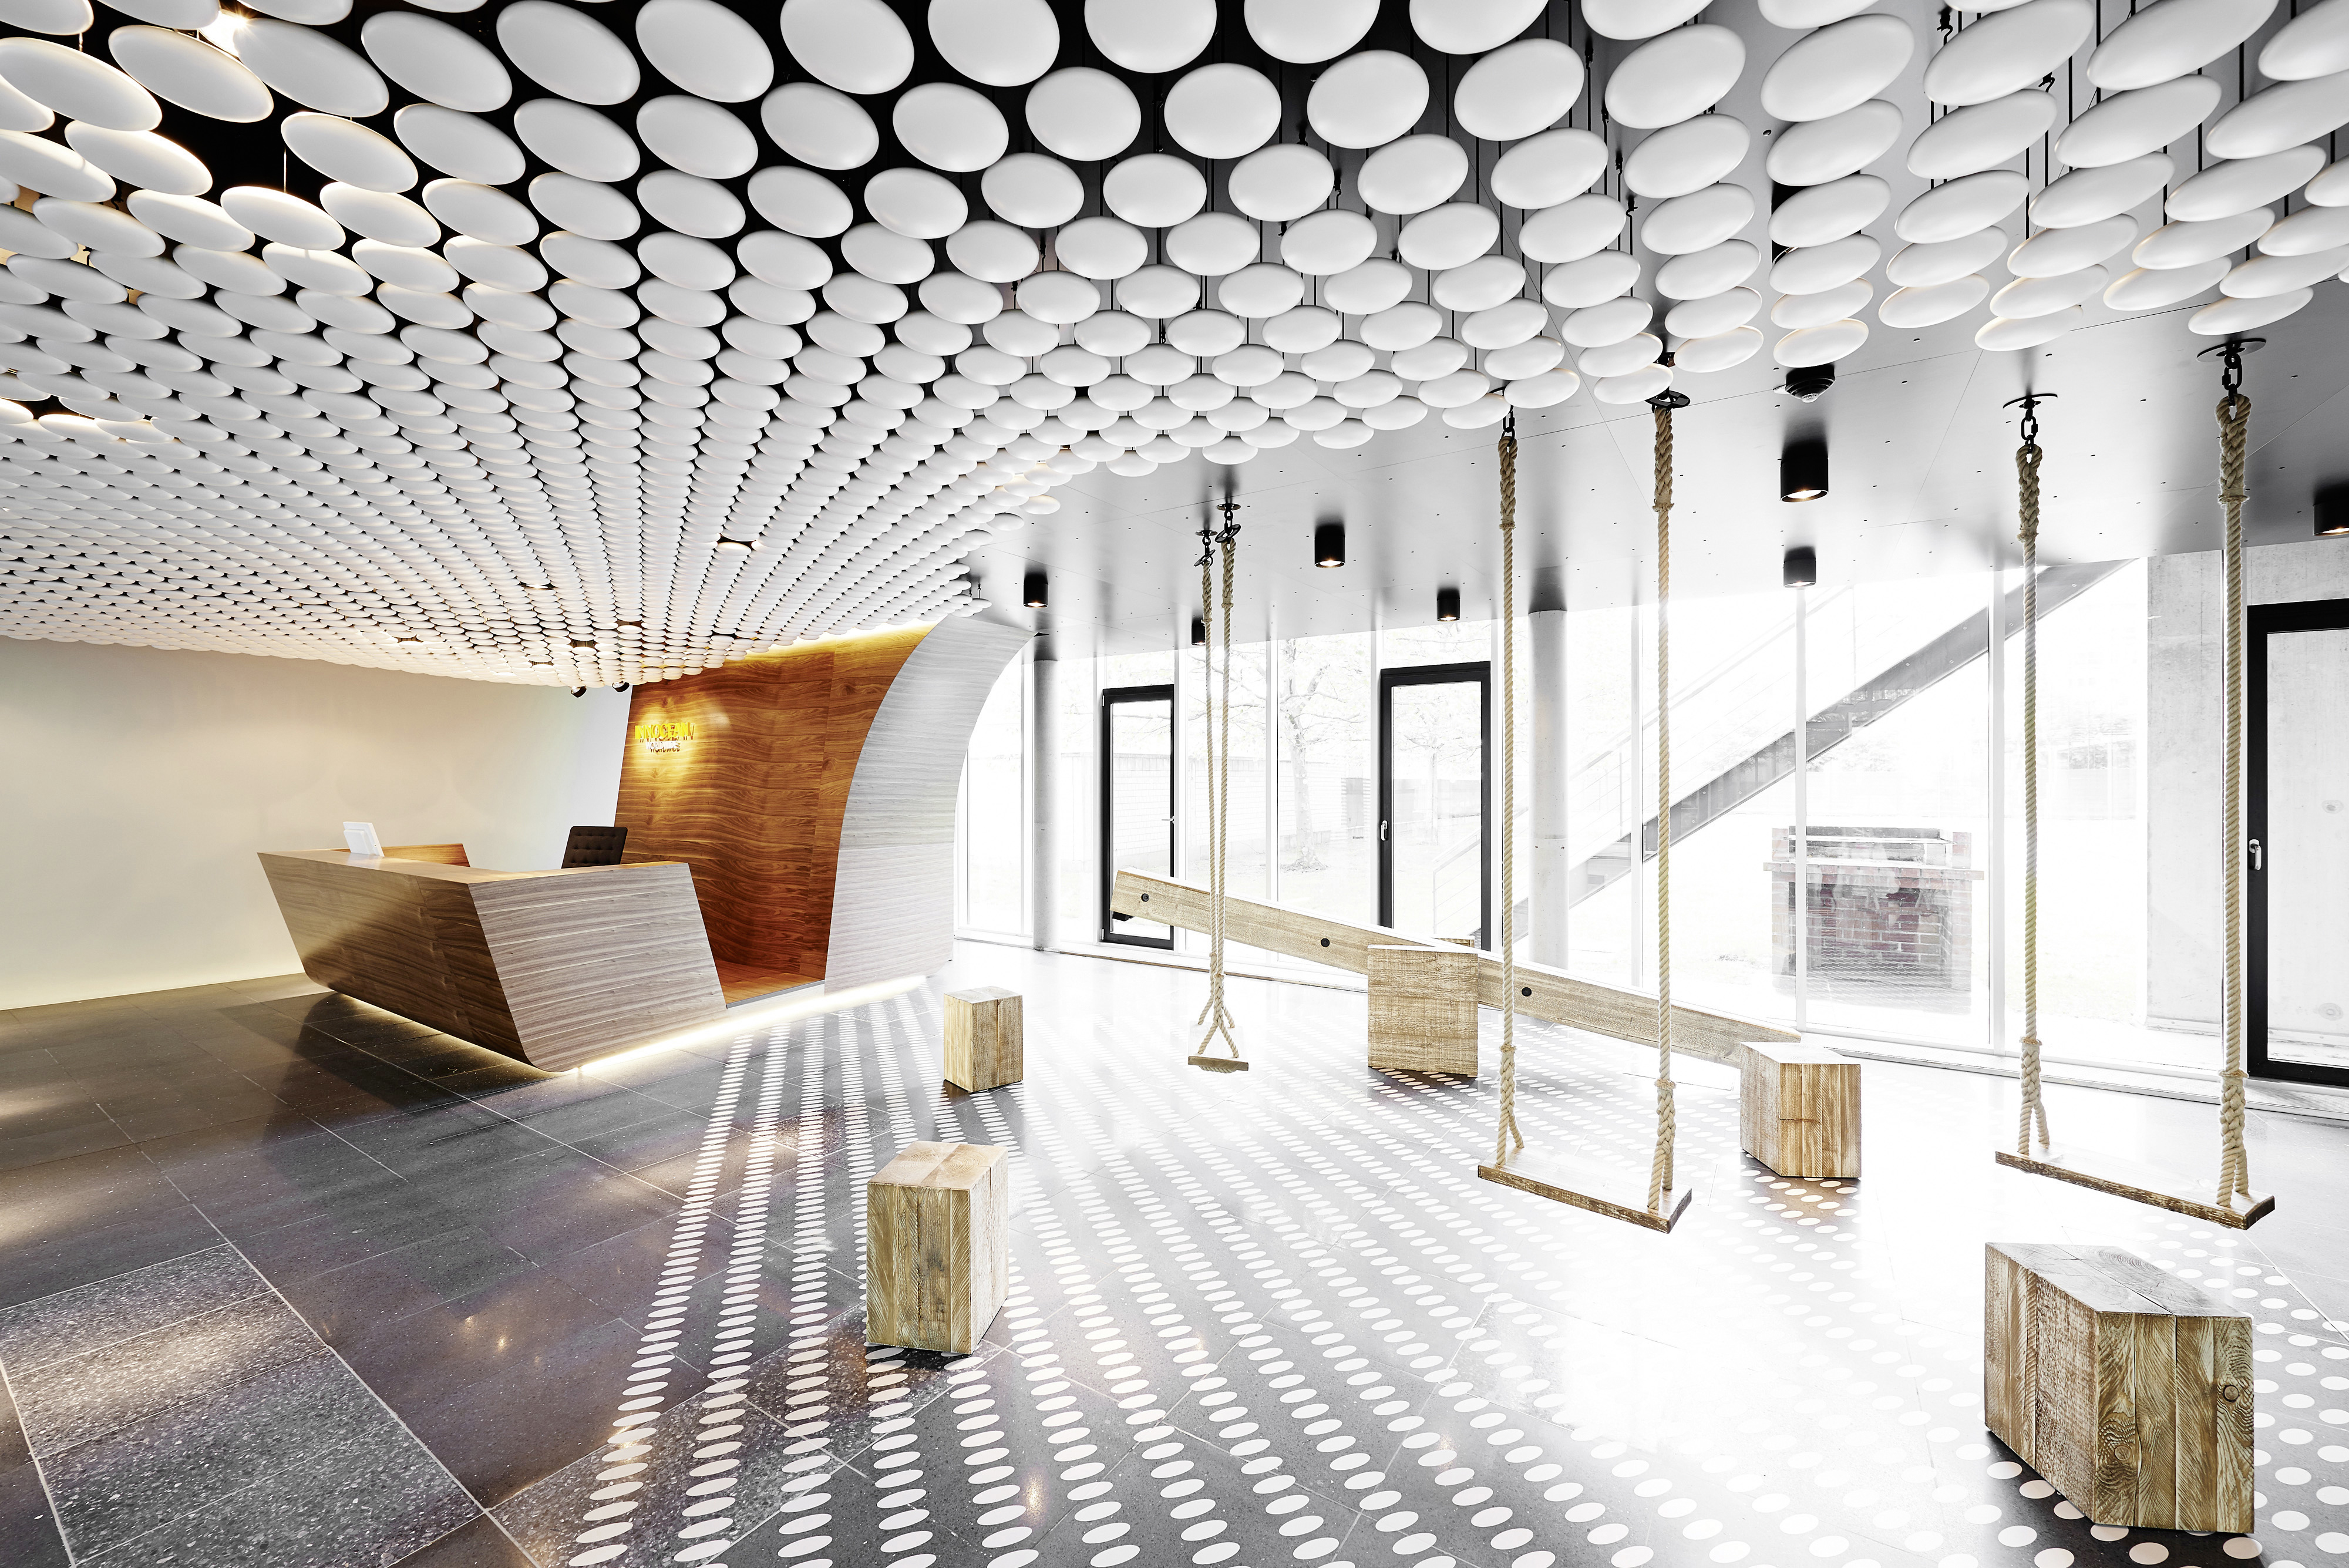 As seen on our top image, the welcoming area floats a stream of white spheres over a minimalist, almost whimsical space featuring dramatically carved wood desk and a series of swings and wood blocks.